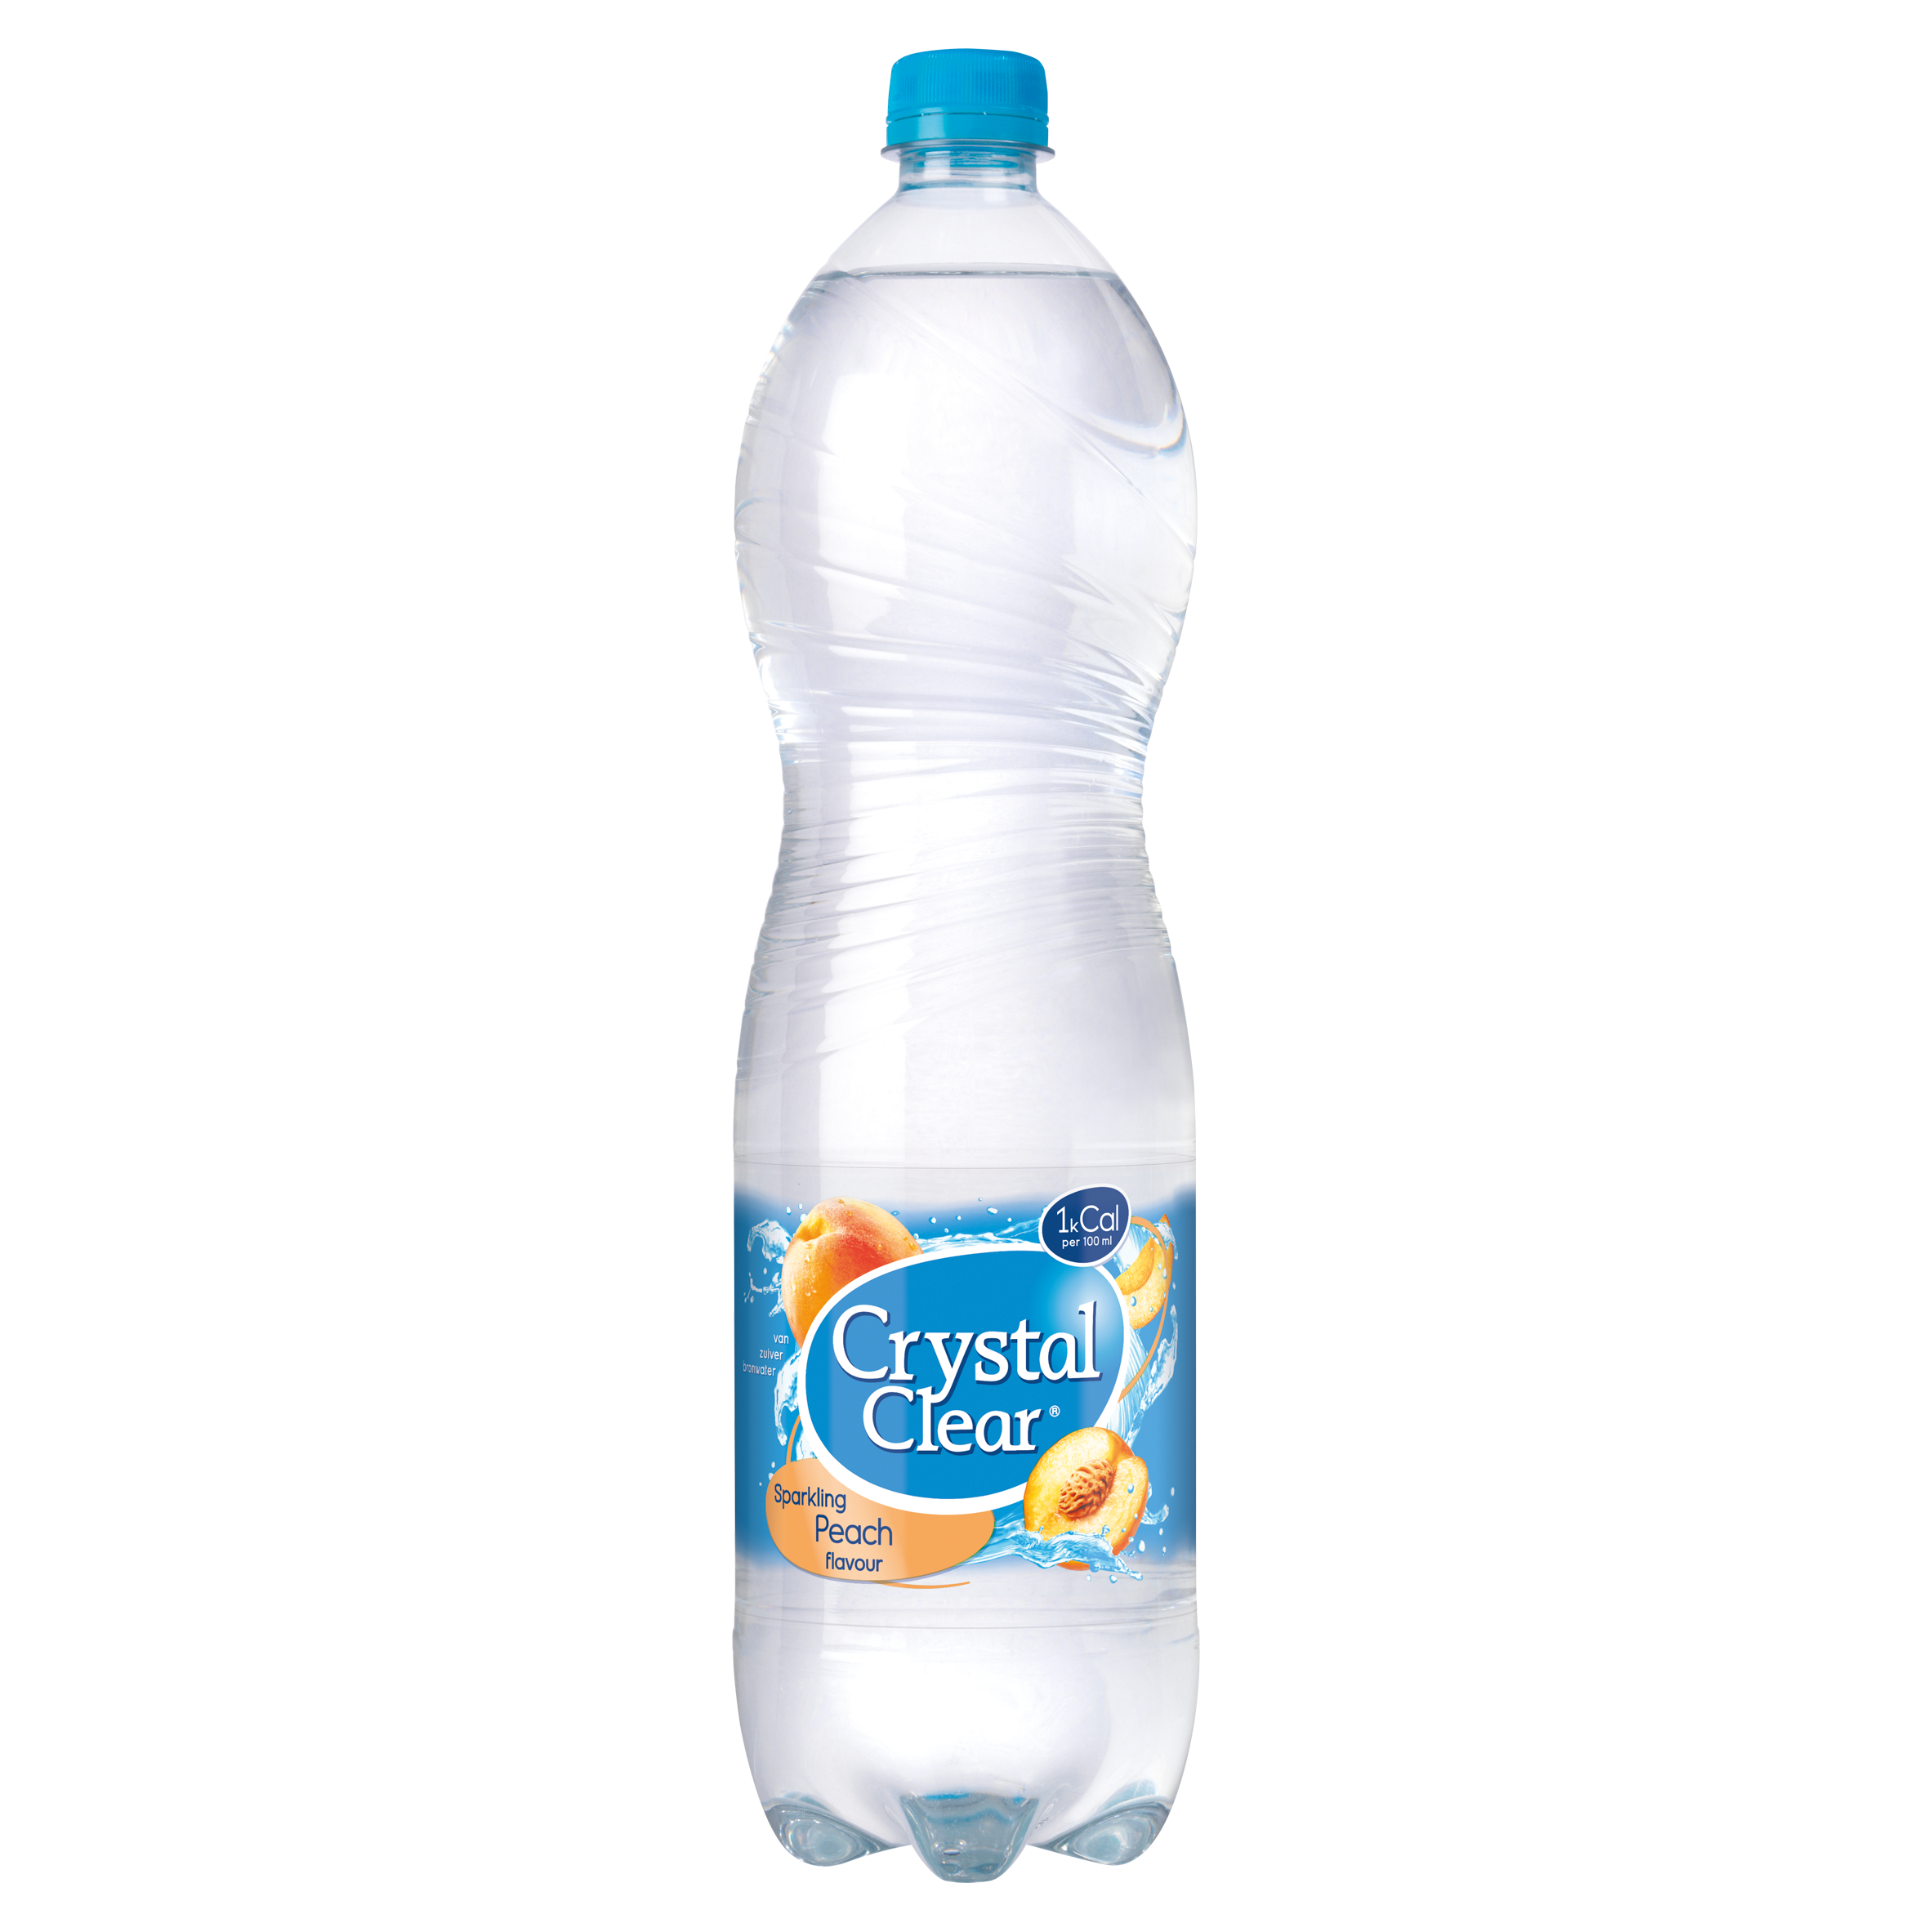 Crystal Clear Sparkling Peach Flavour 1,5 Liter